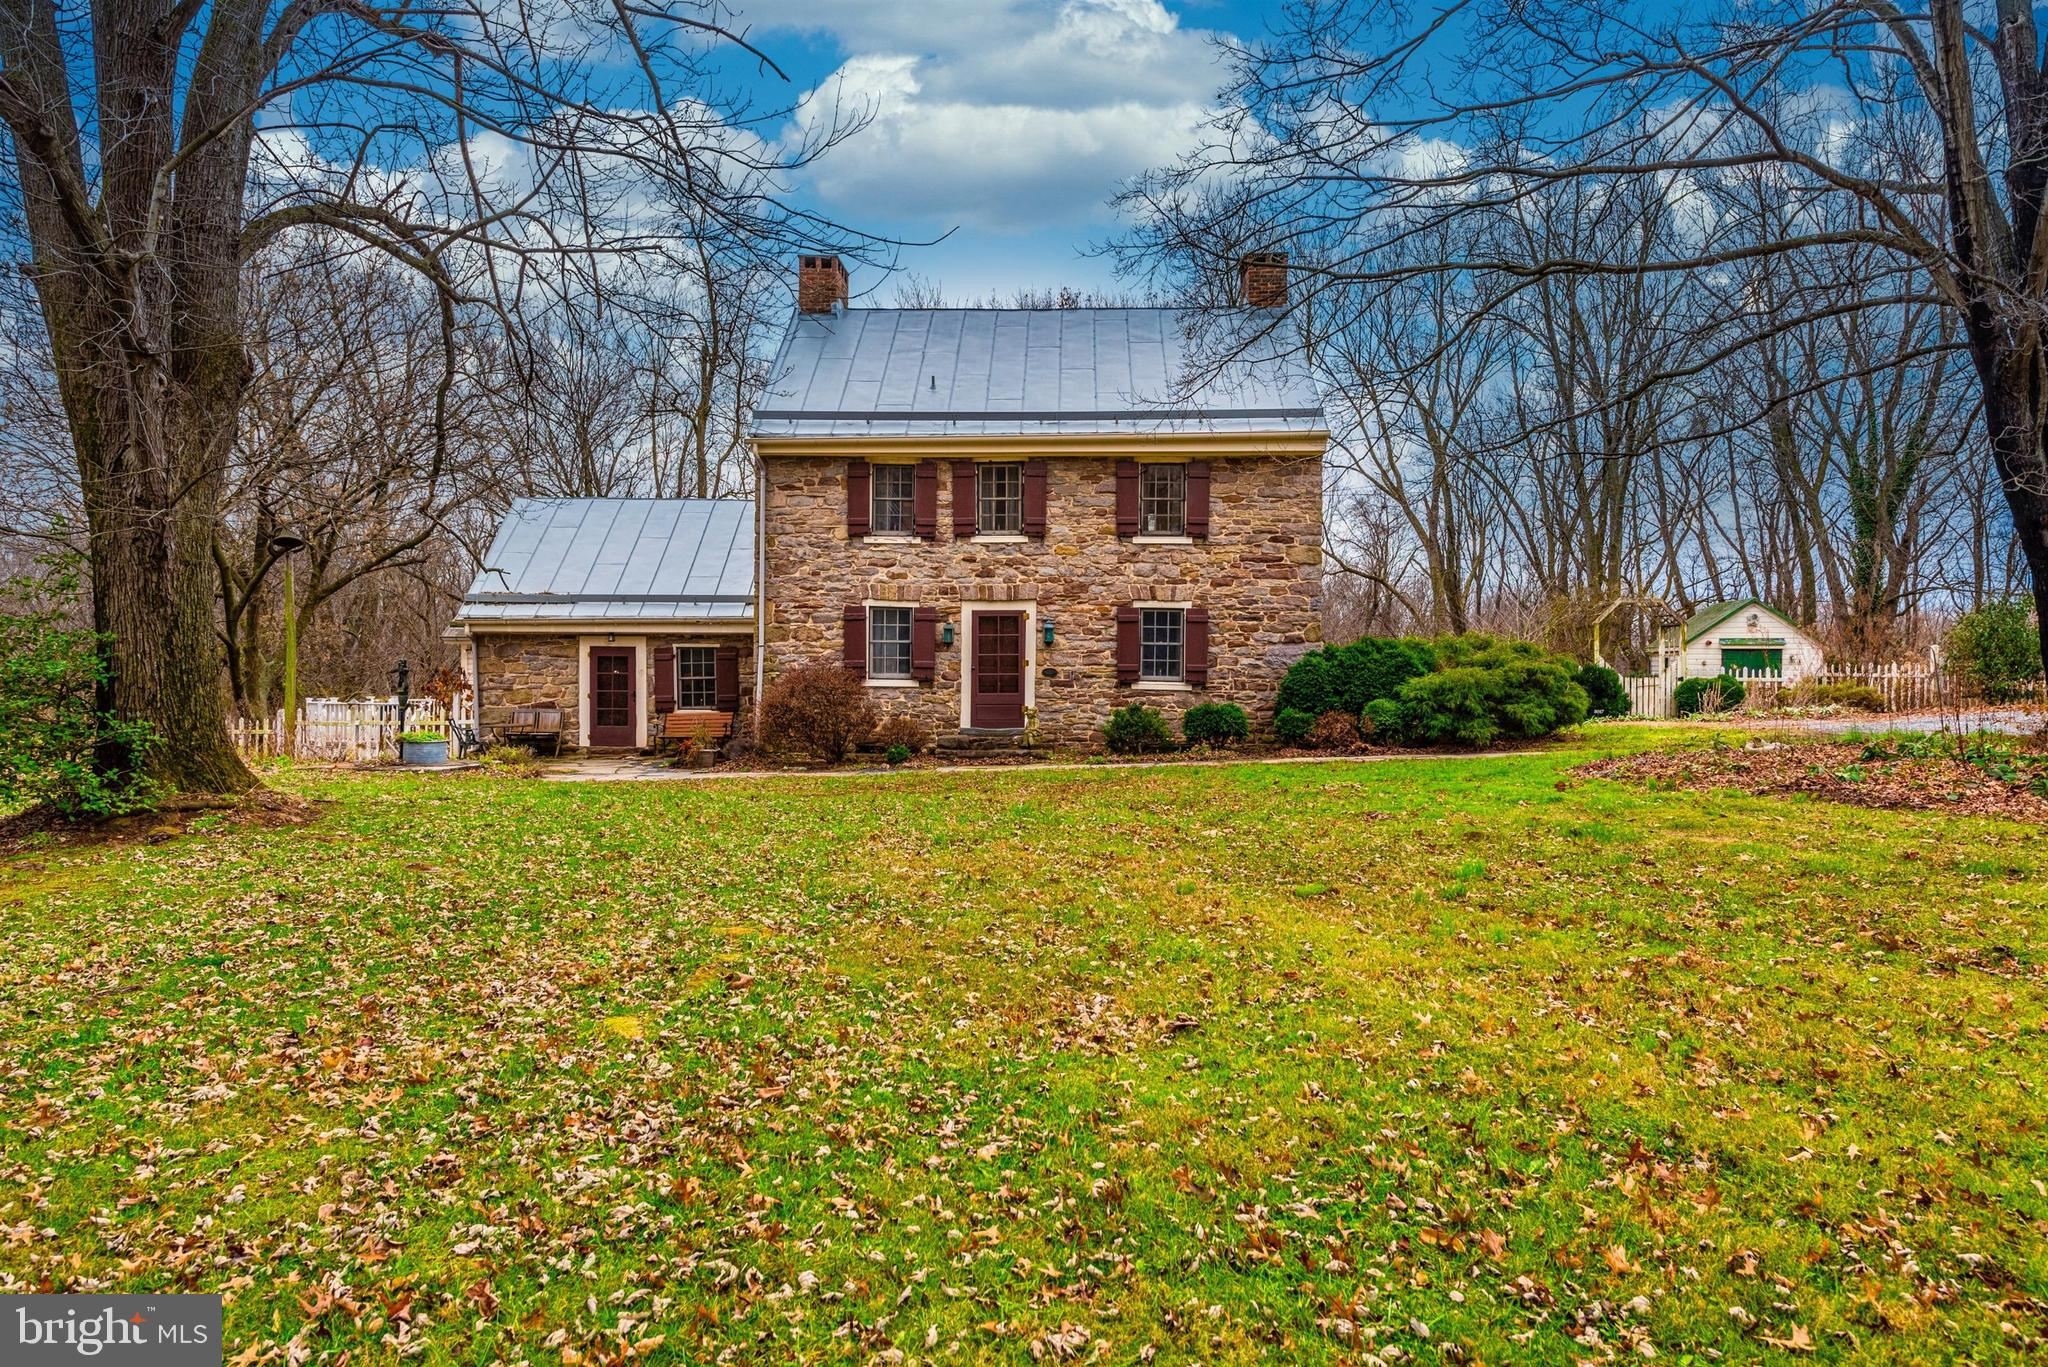 Beautiful Colonial era stone house on 12 mostly wooded acres dates to 1749 - original Devilbiss/Ogle